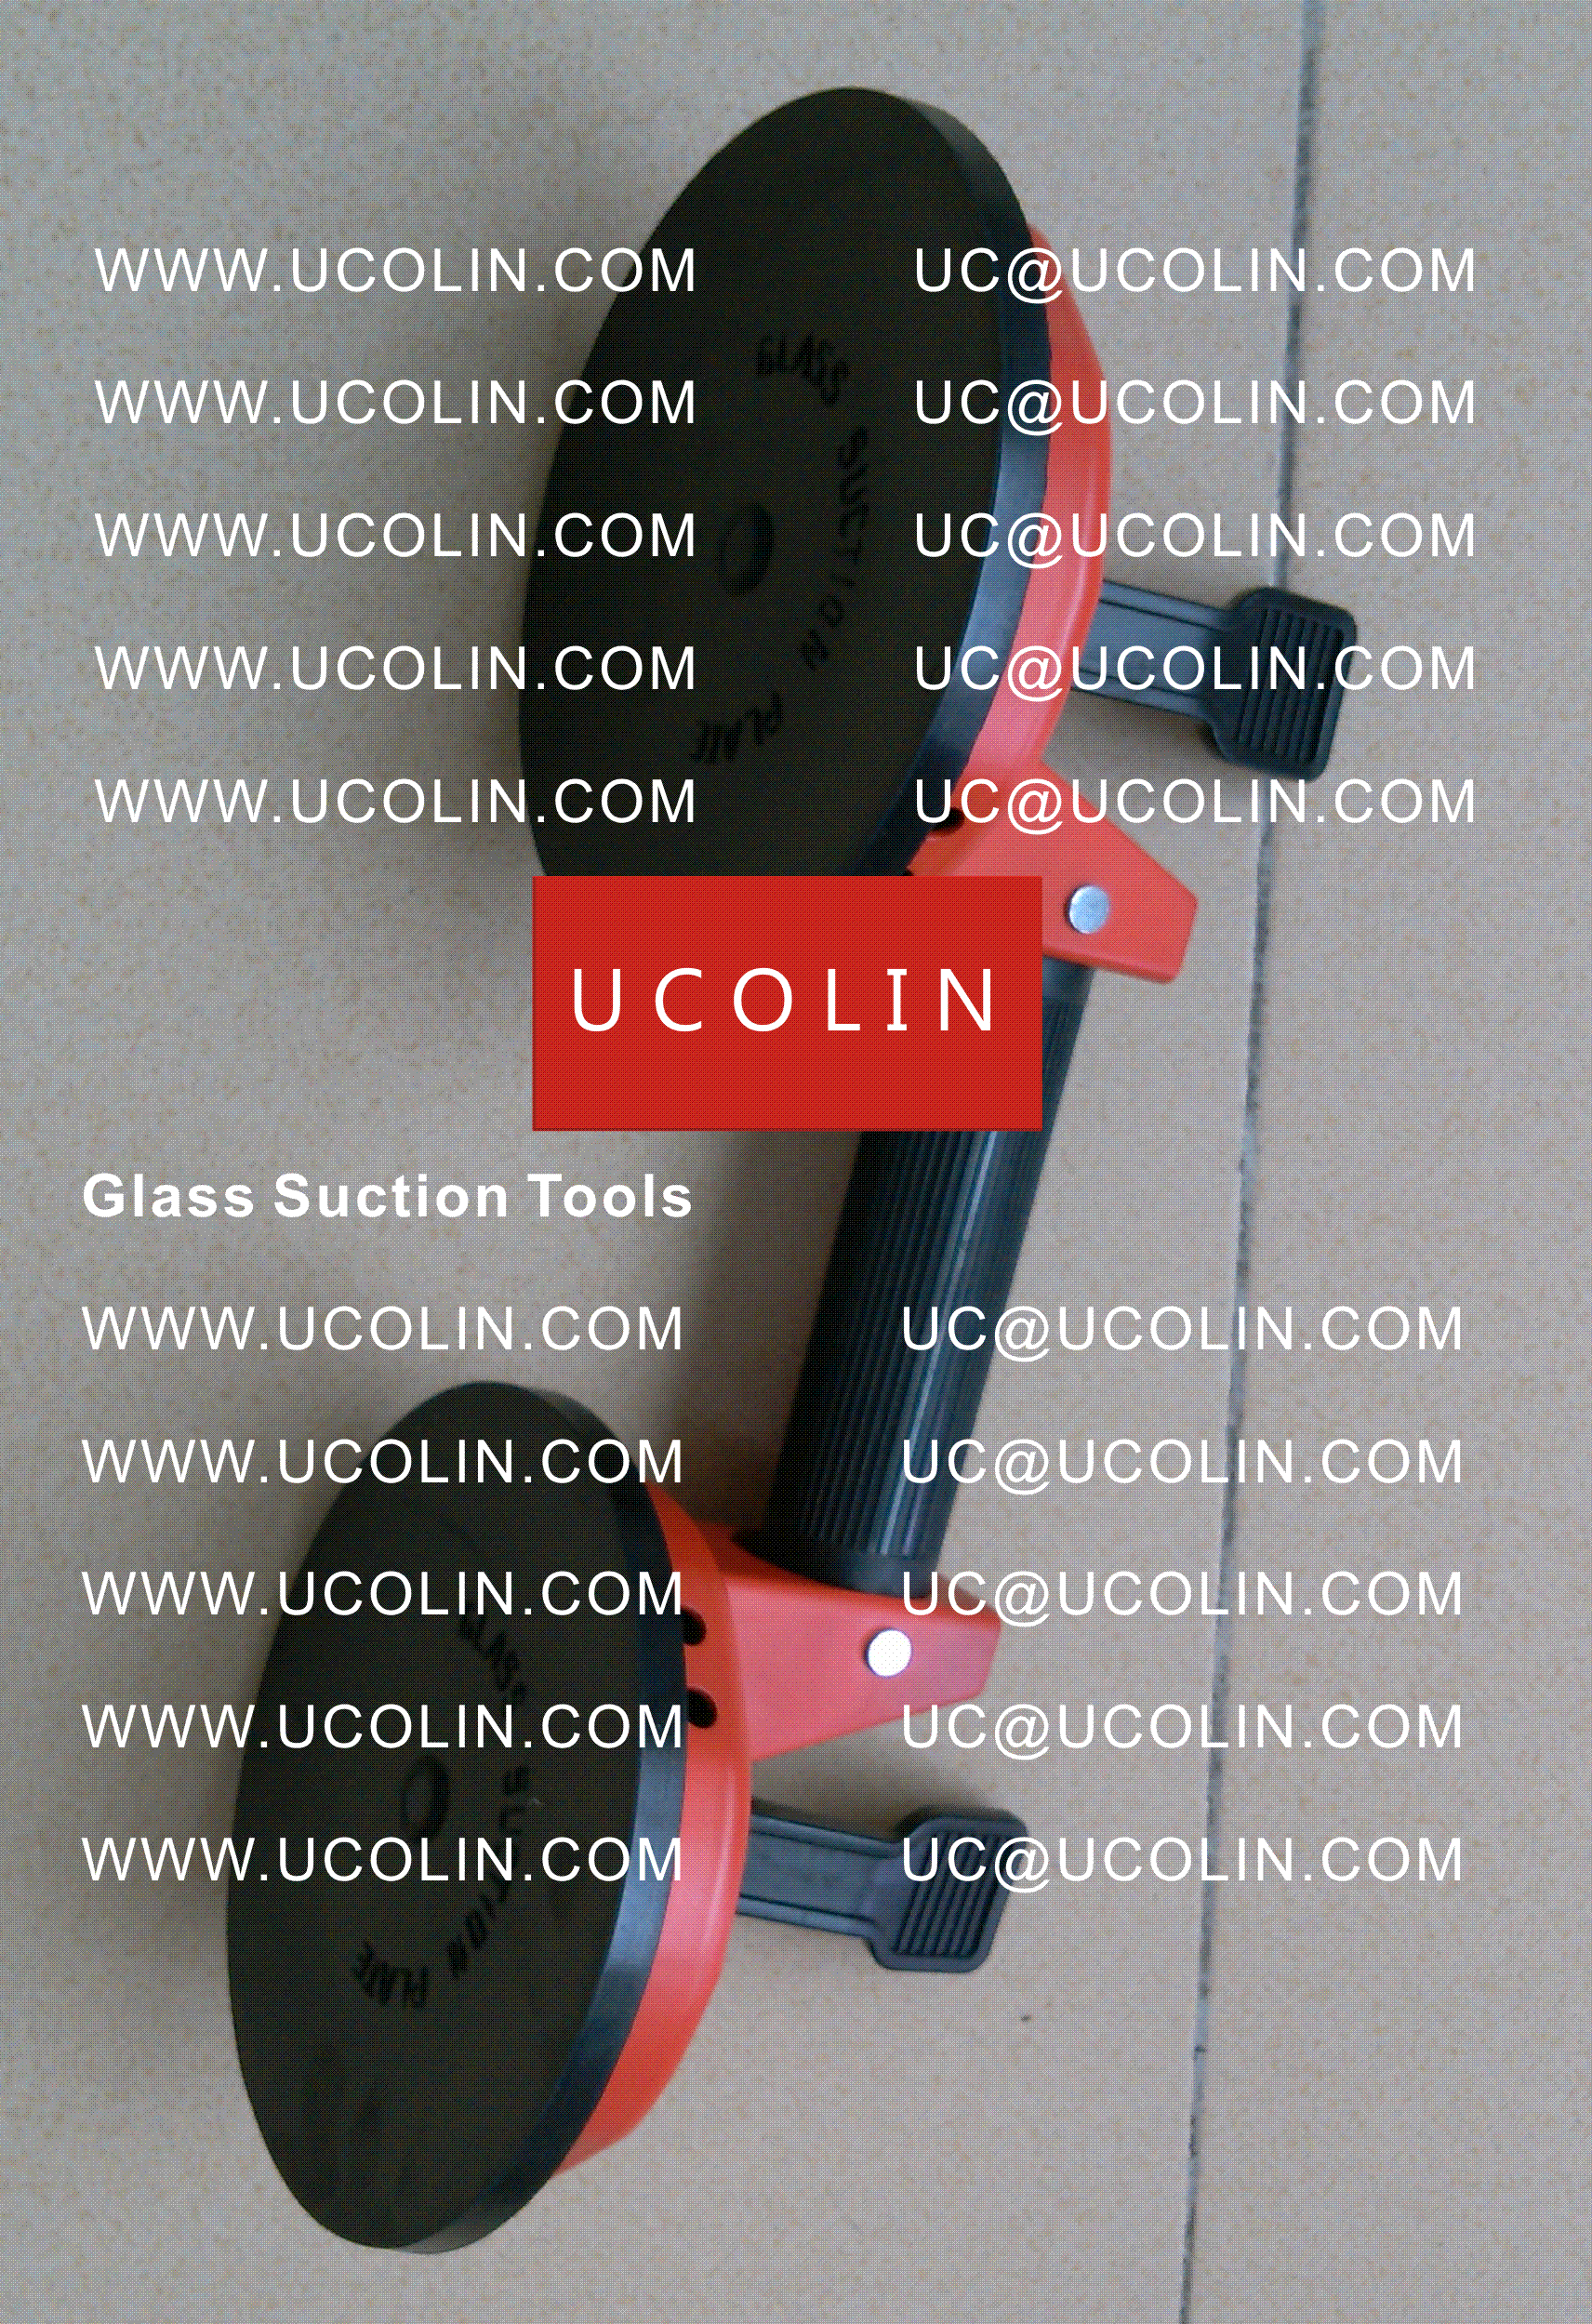 002 Glass Suction Tools